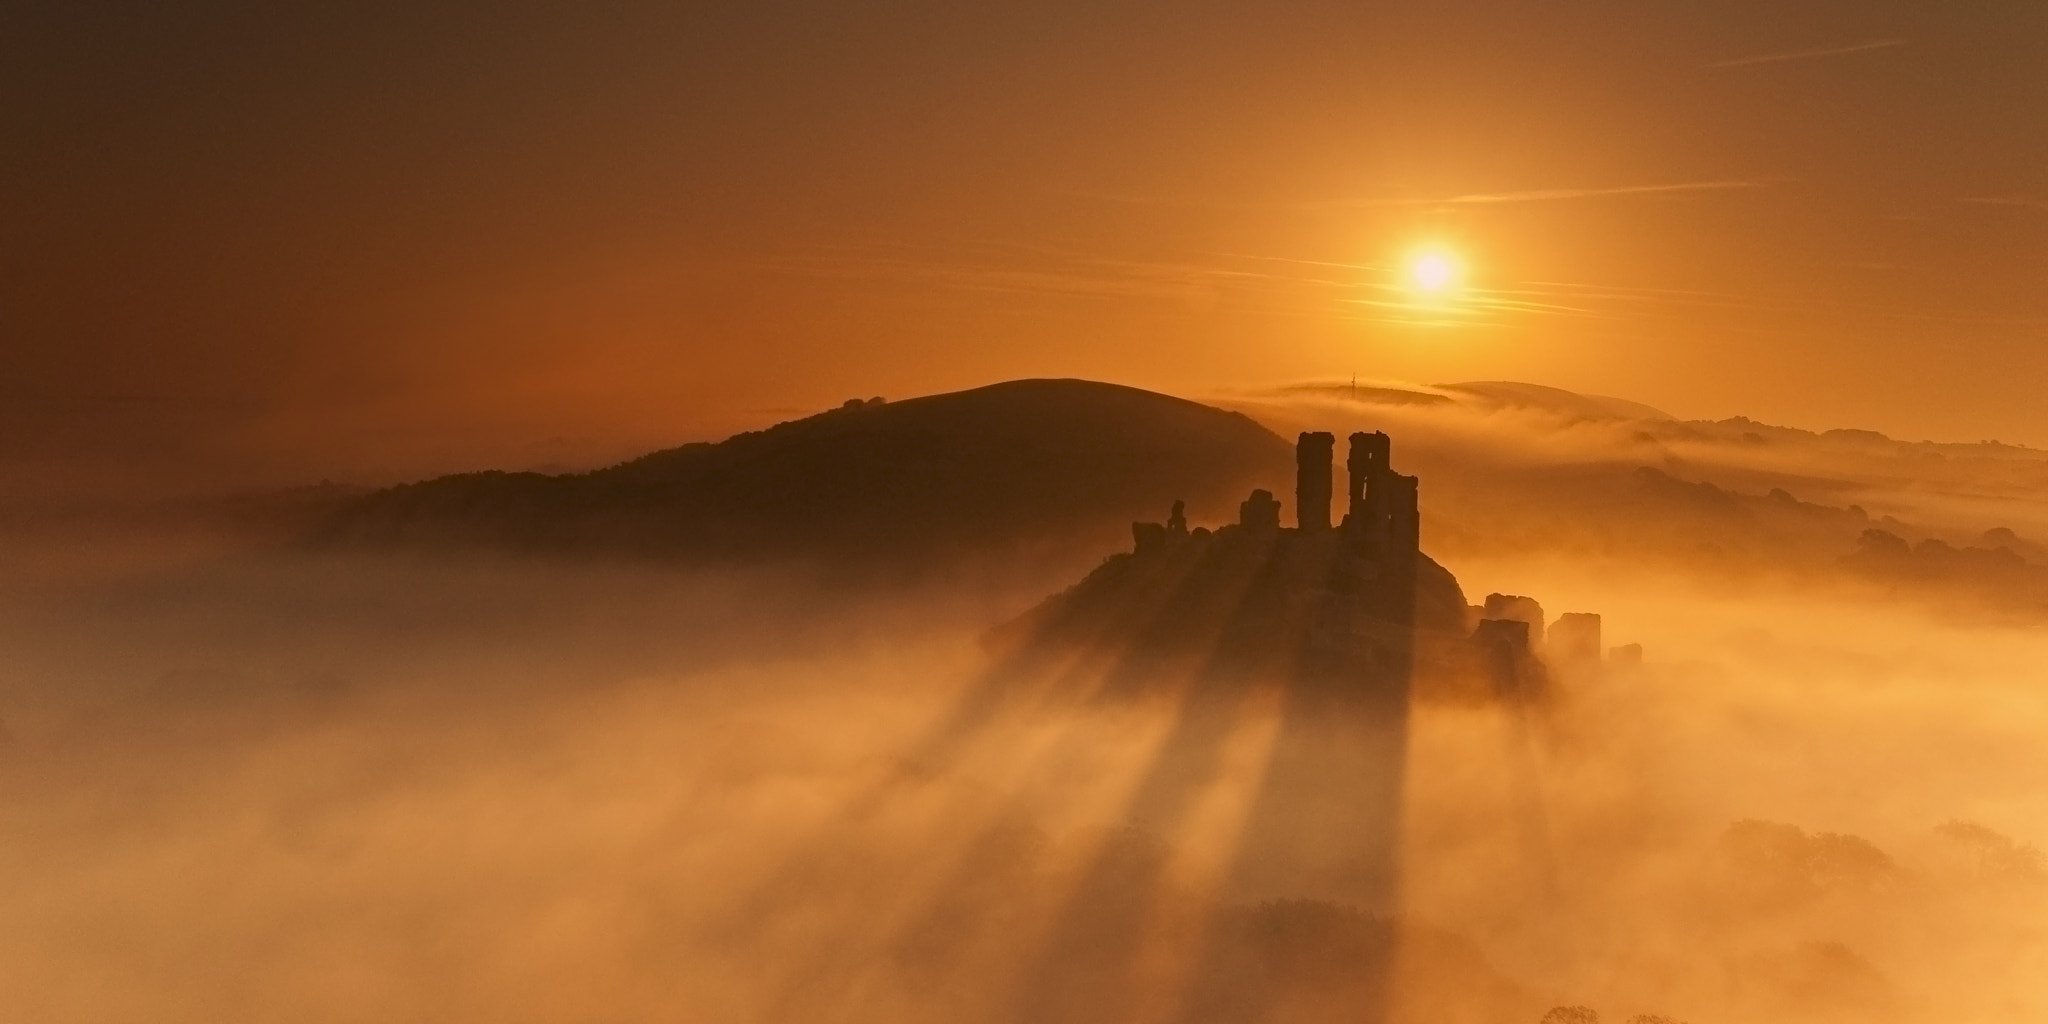 Photograph Golden mist opportunity by Andreas Jones on 500px